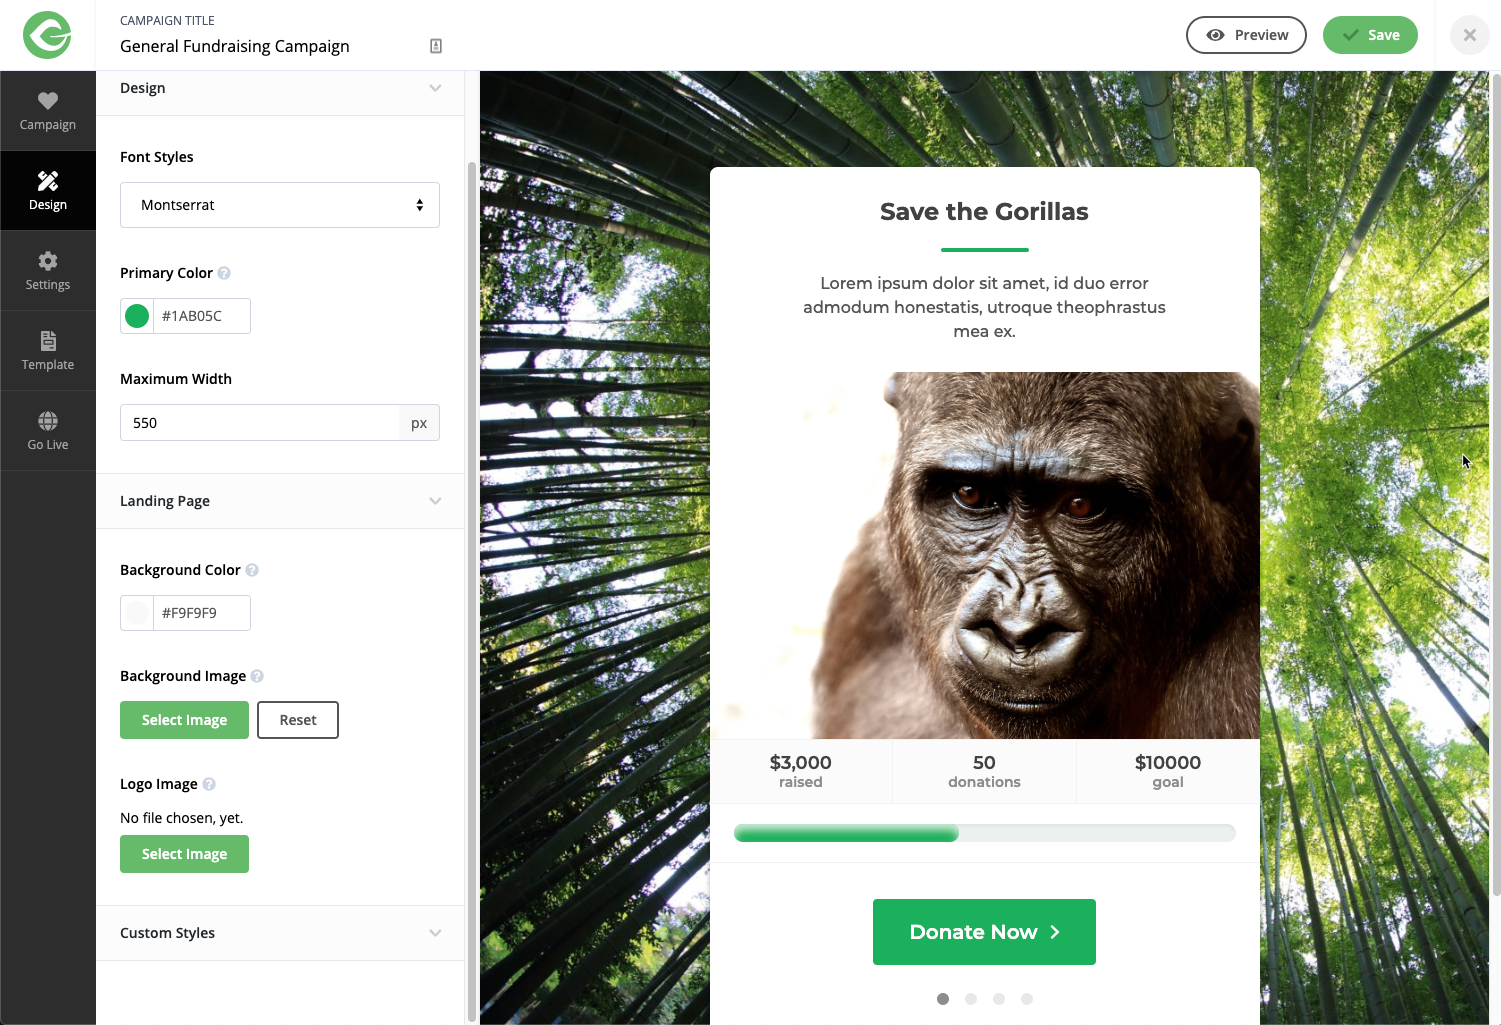 Final Save the Gorilla form with a tree backdrop behind a donation form. The form editor is off to the left side of the screen in a menu bar.